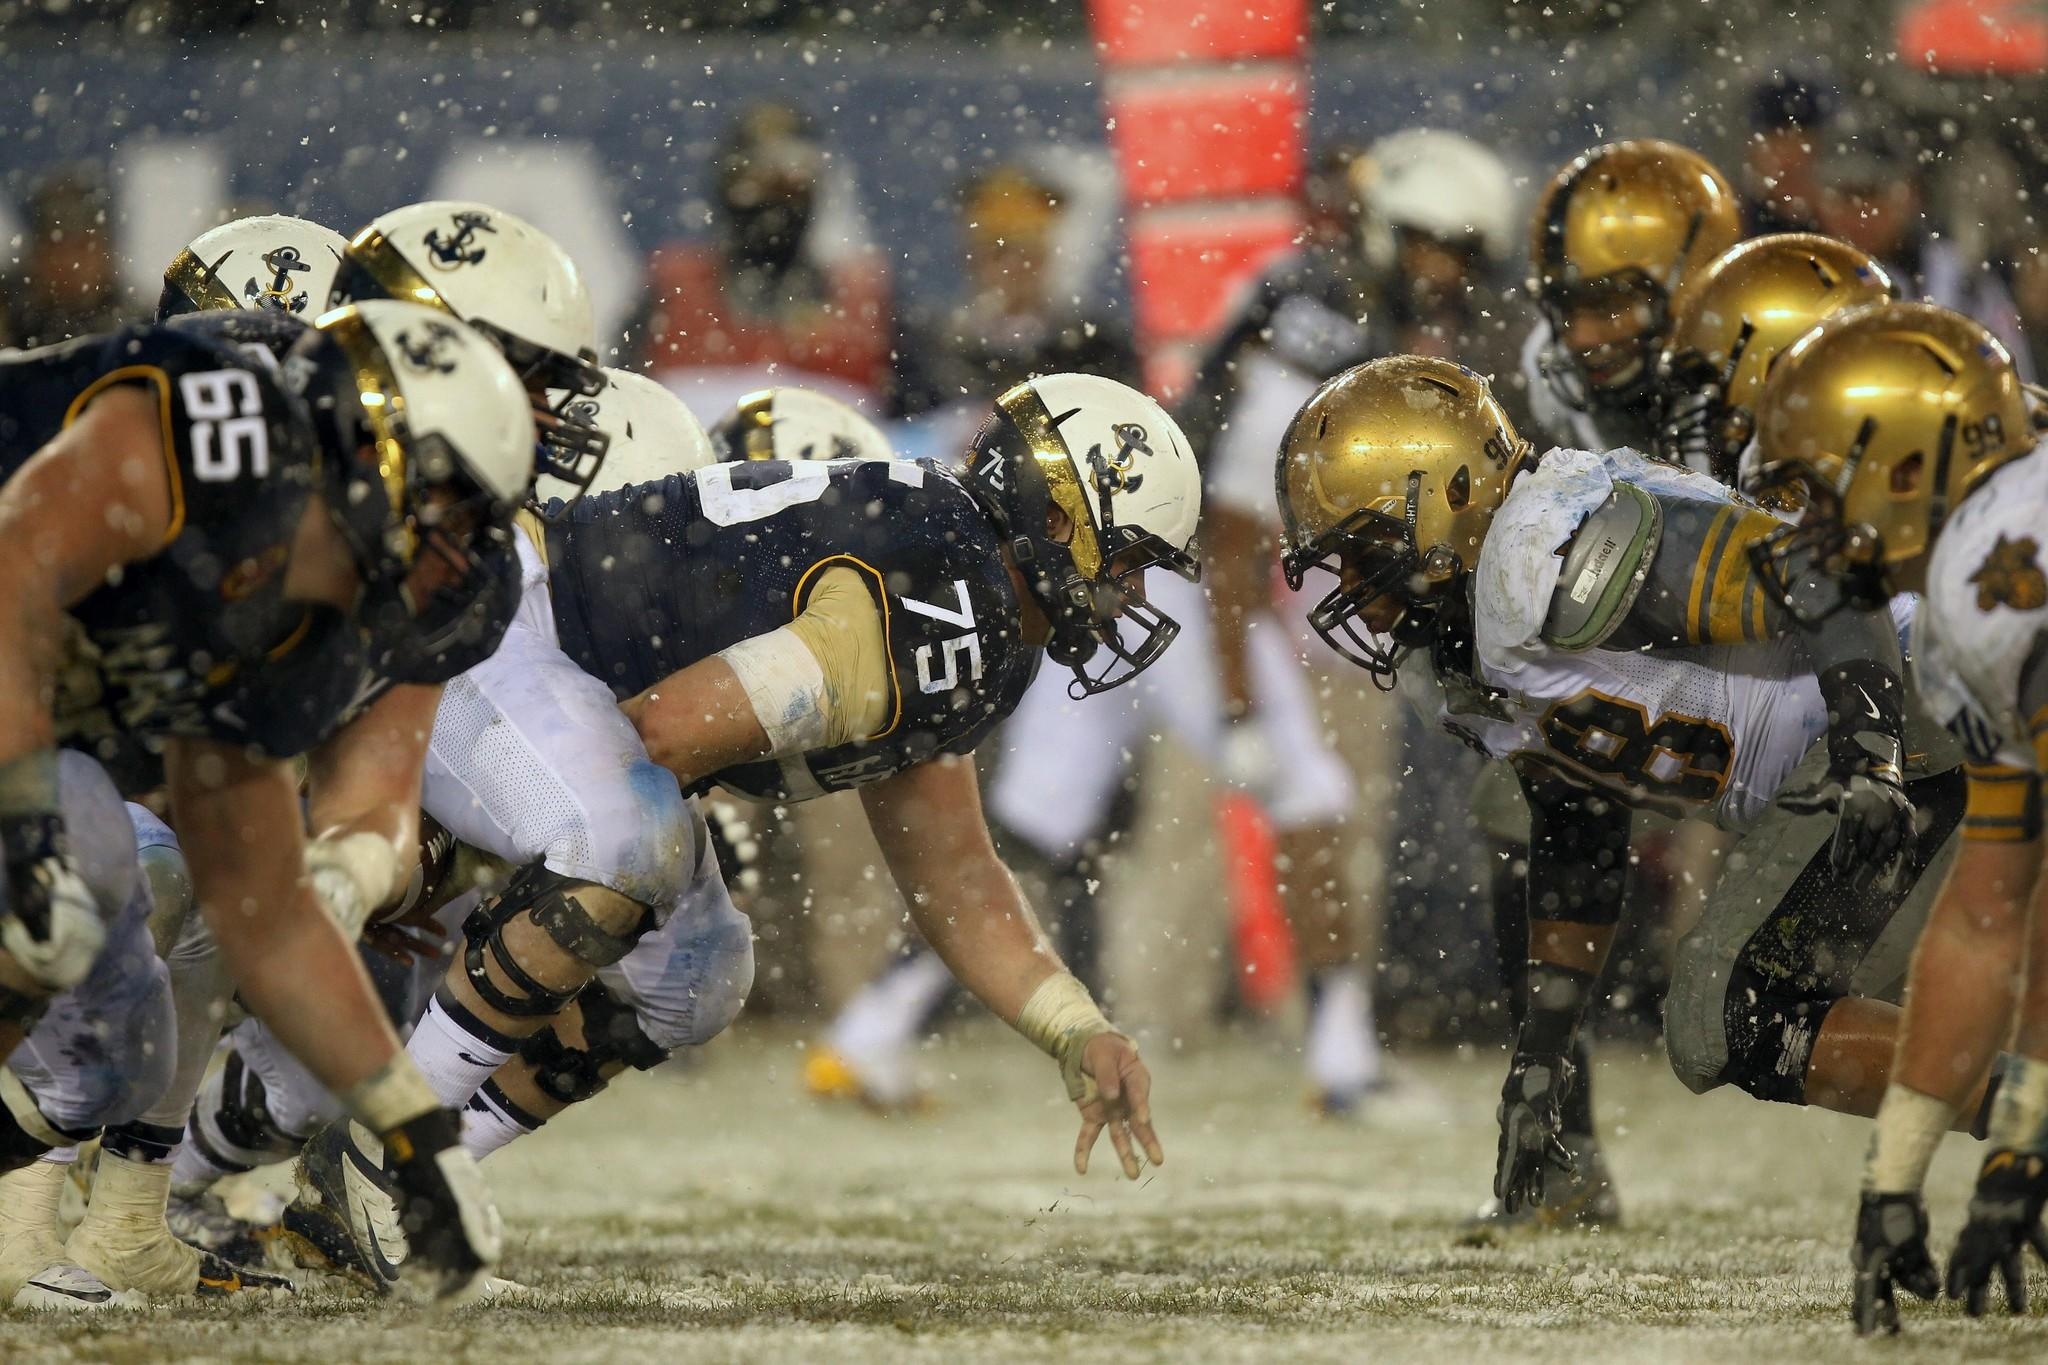 Center Tanner Fleming (75) and the Navy line prepare to collide with defensive lineman Richard Glover (98) and the Army defense at the line of scrimmage during the first half at Lincoln Financial Field.